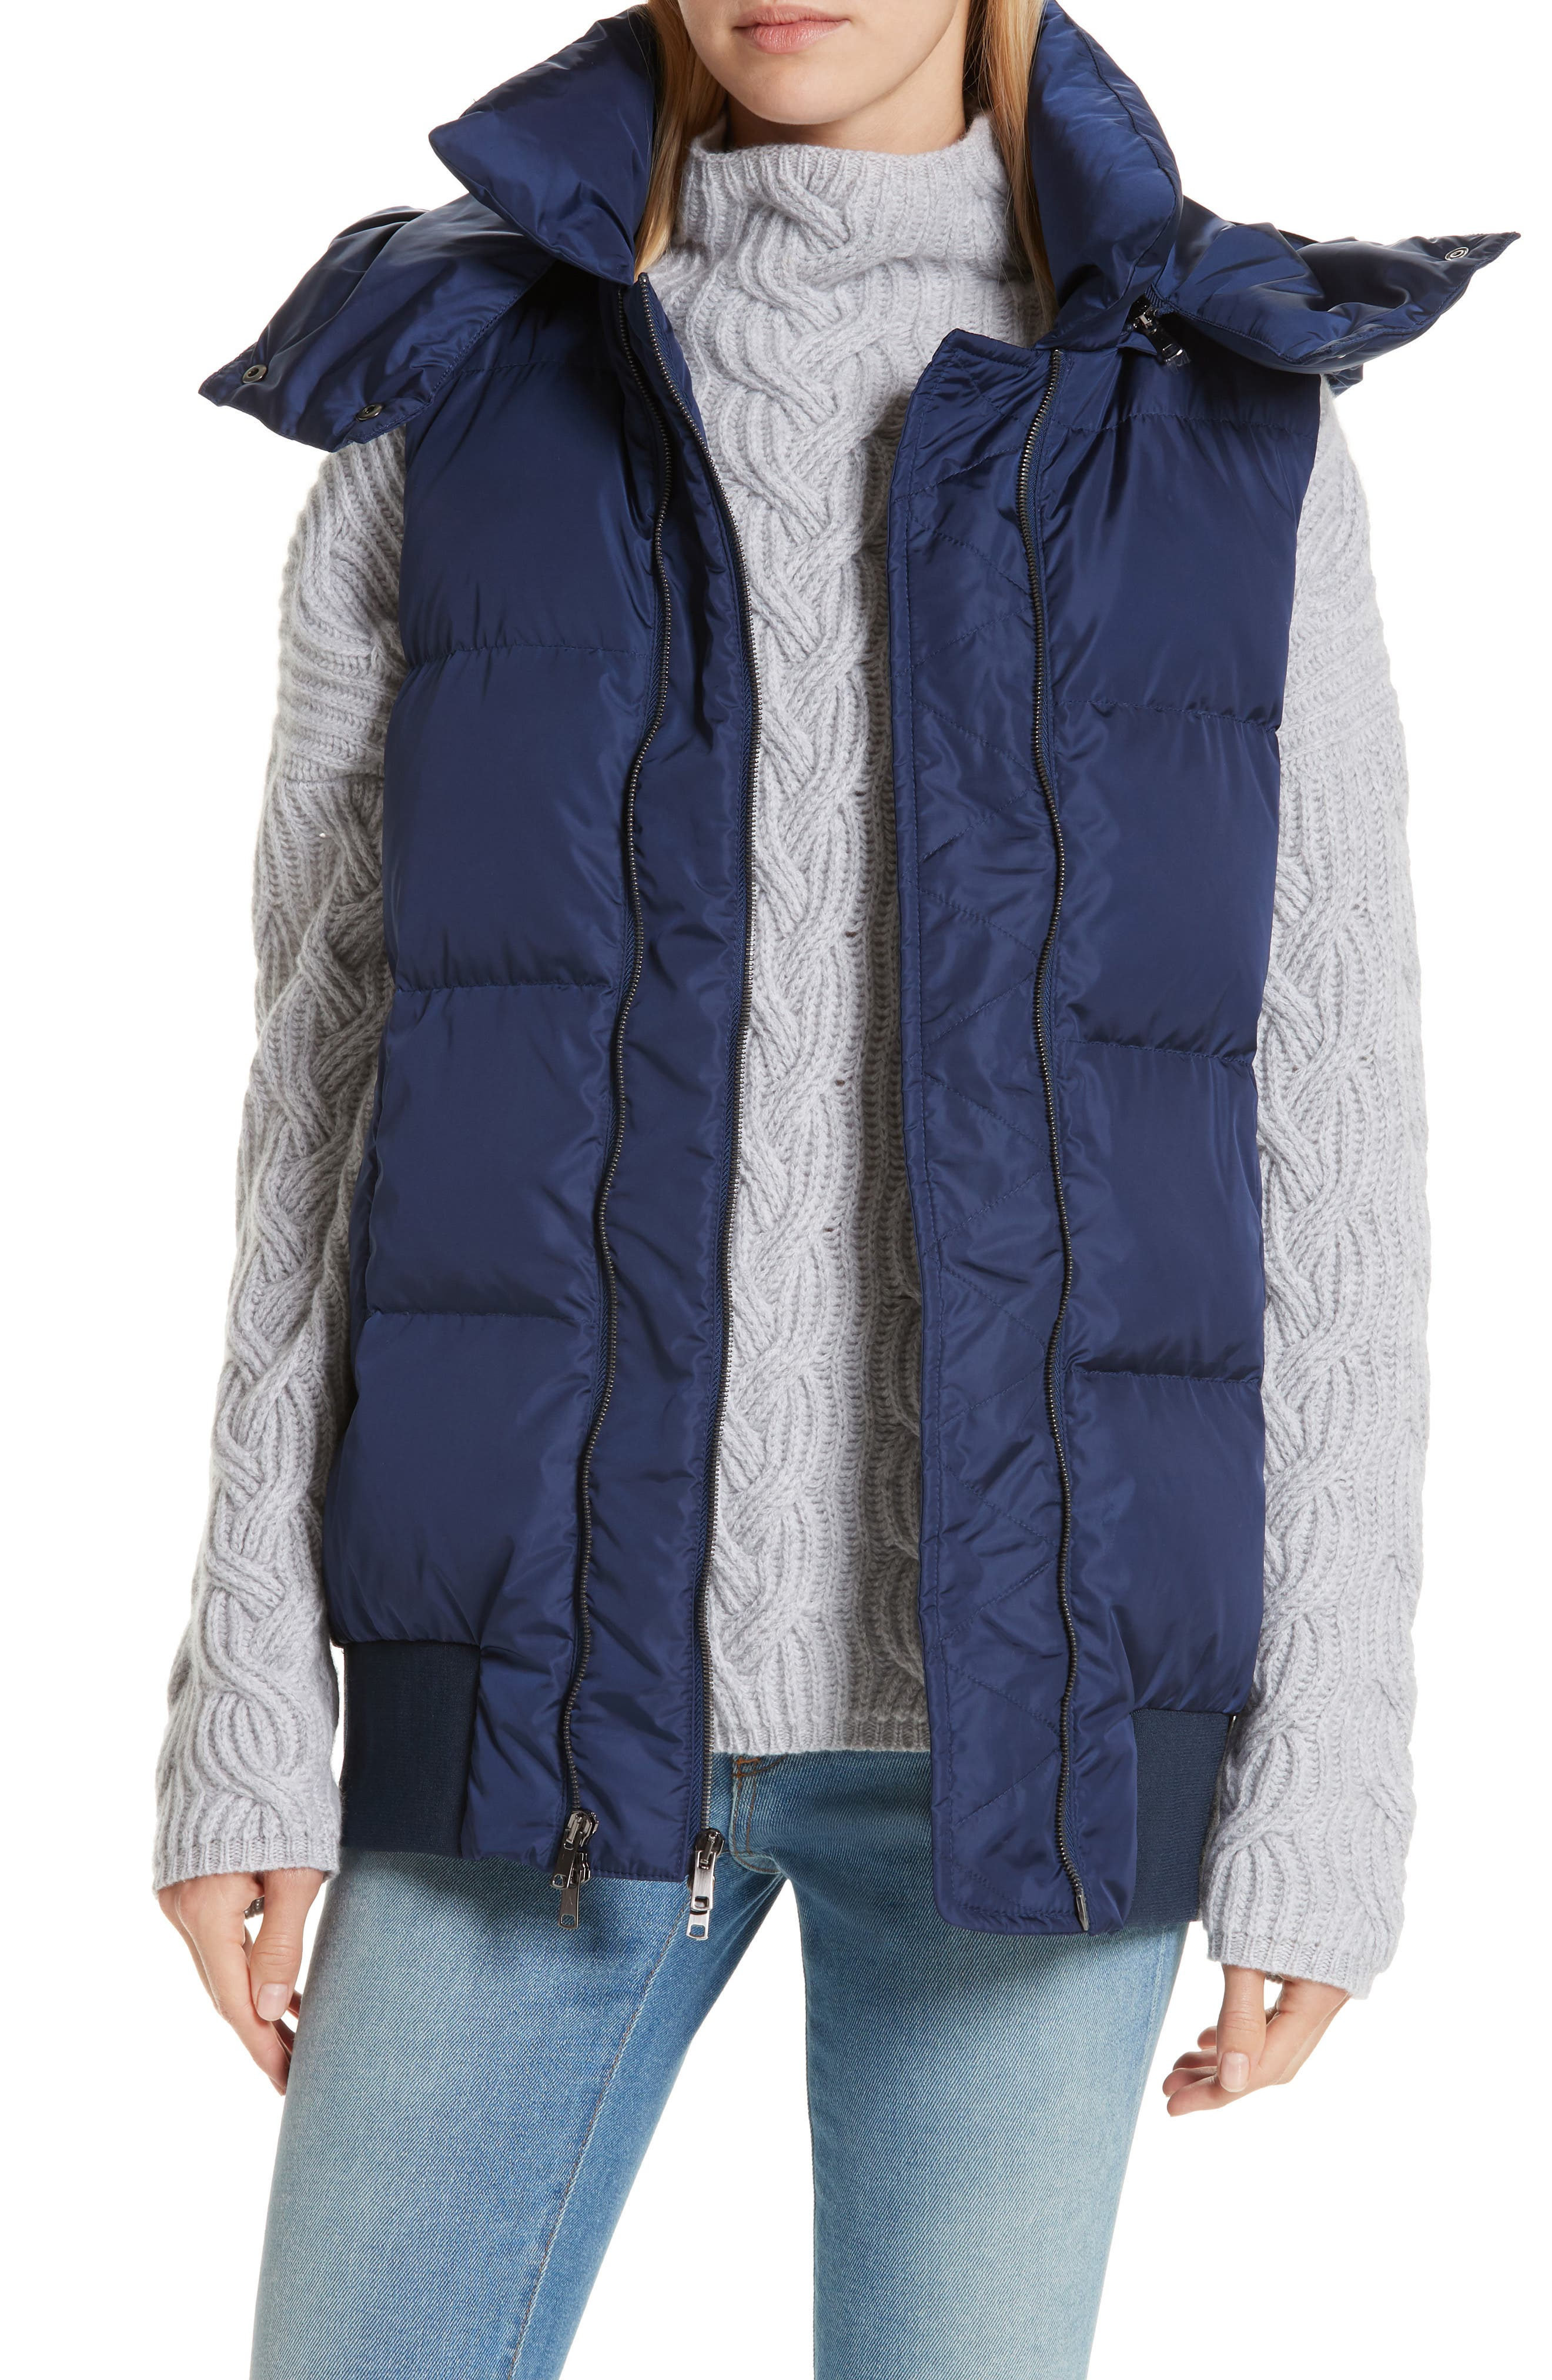 Hooded Puffer Vest,                             Main thumbnail 1, color,                             410